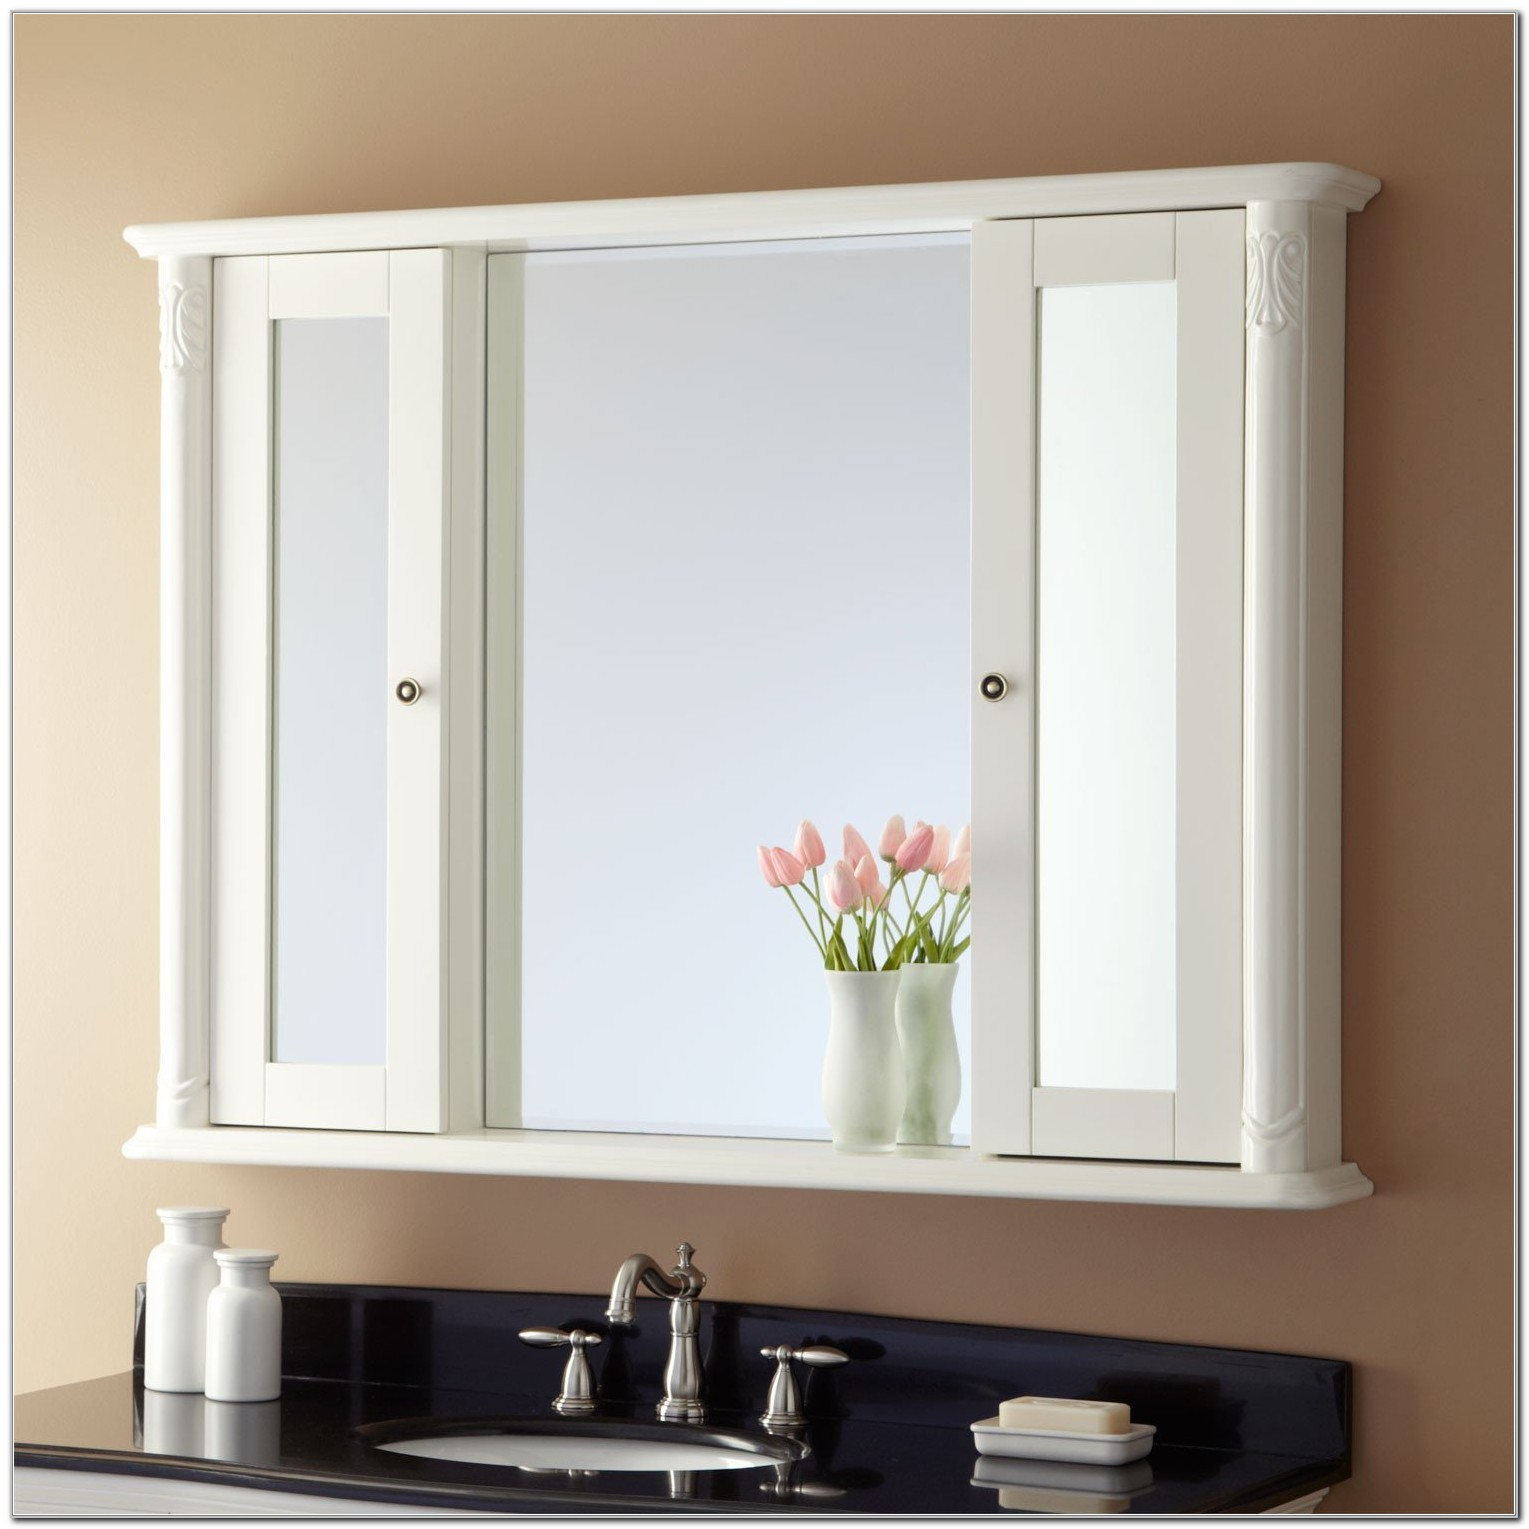 Surface Mounted Medicine Cabinets With Mirror